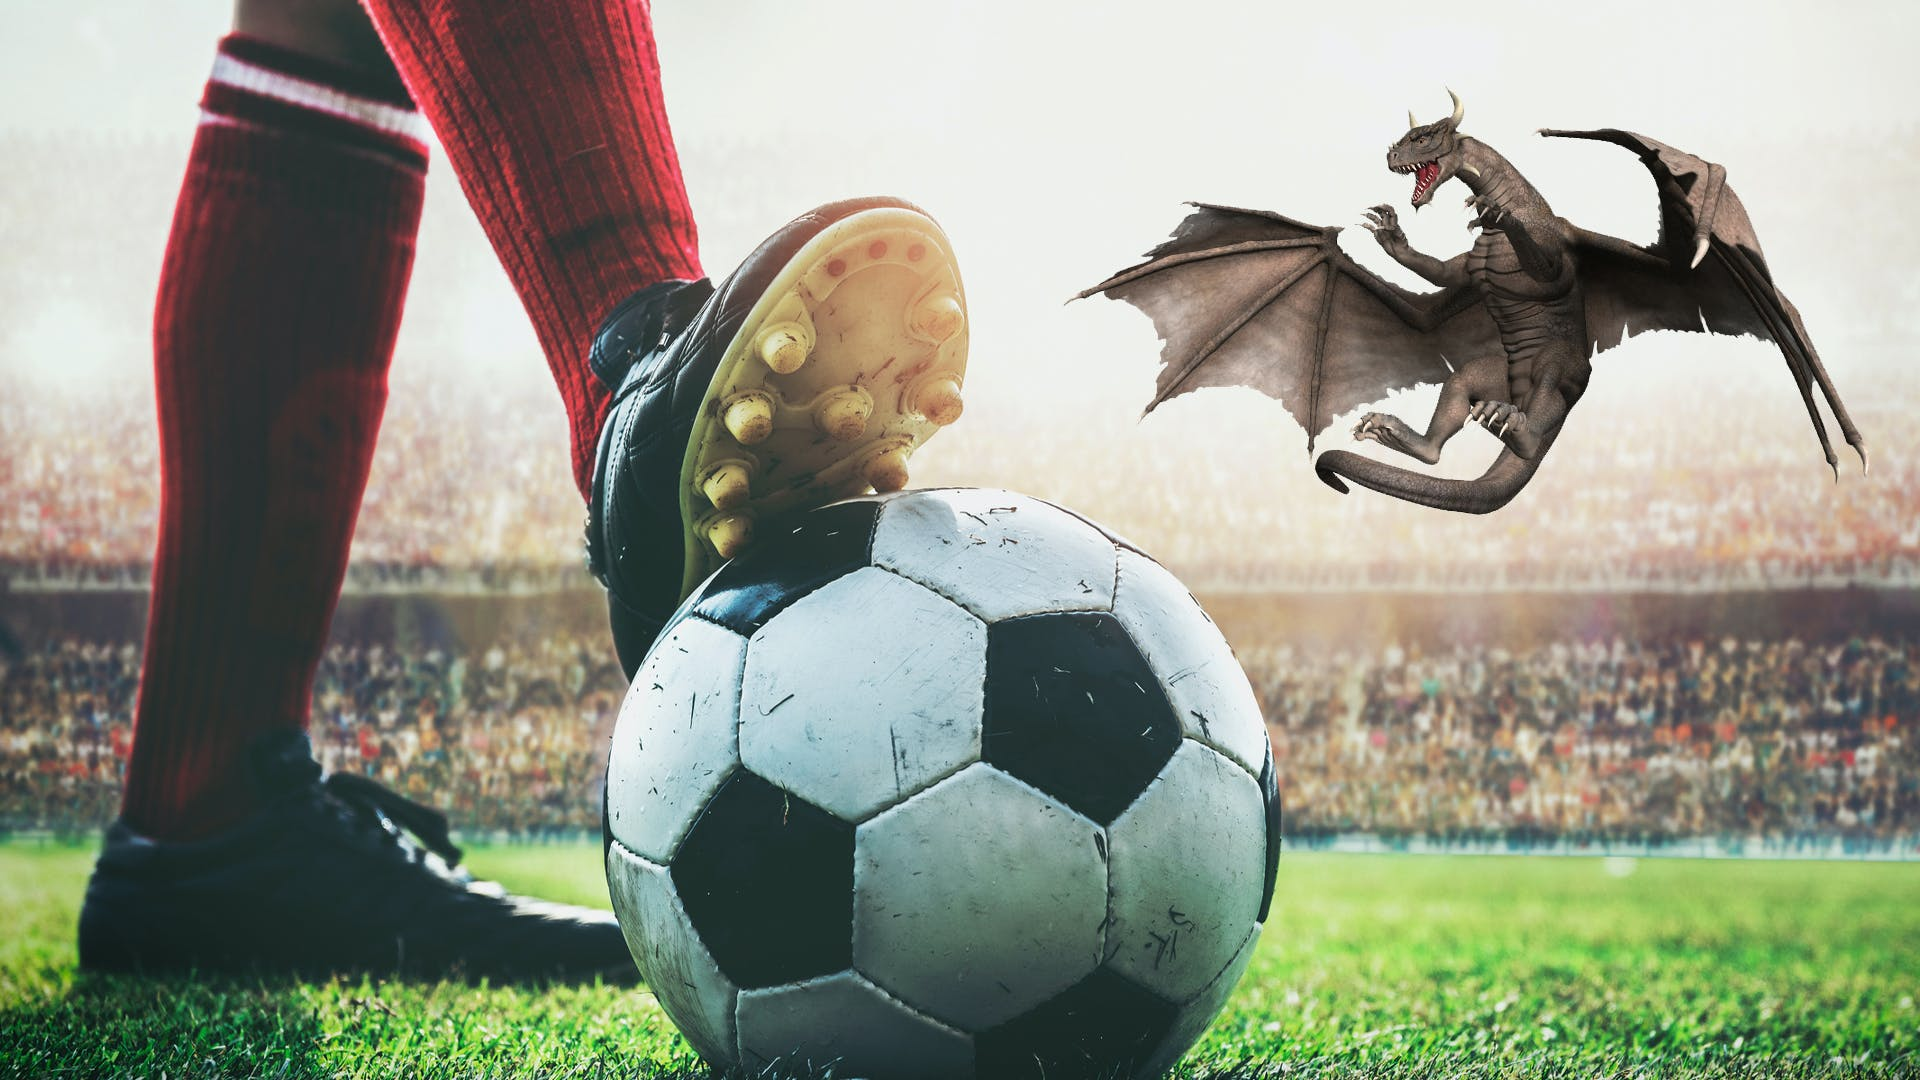 A dragon playing football